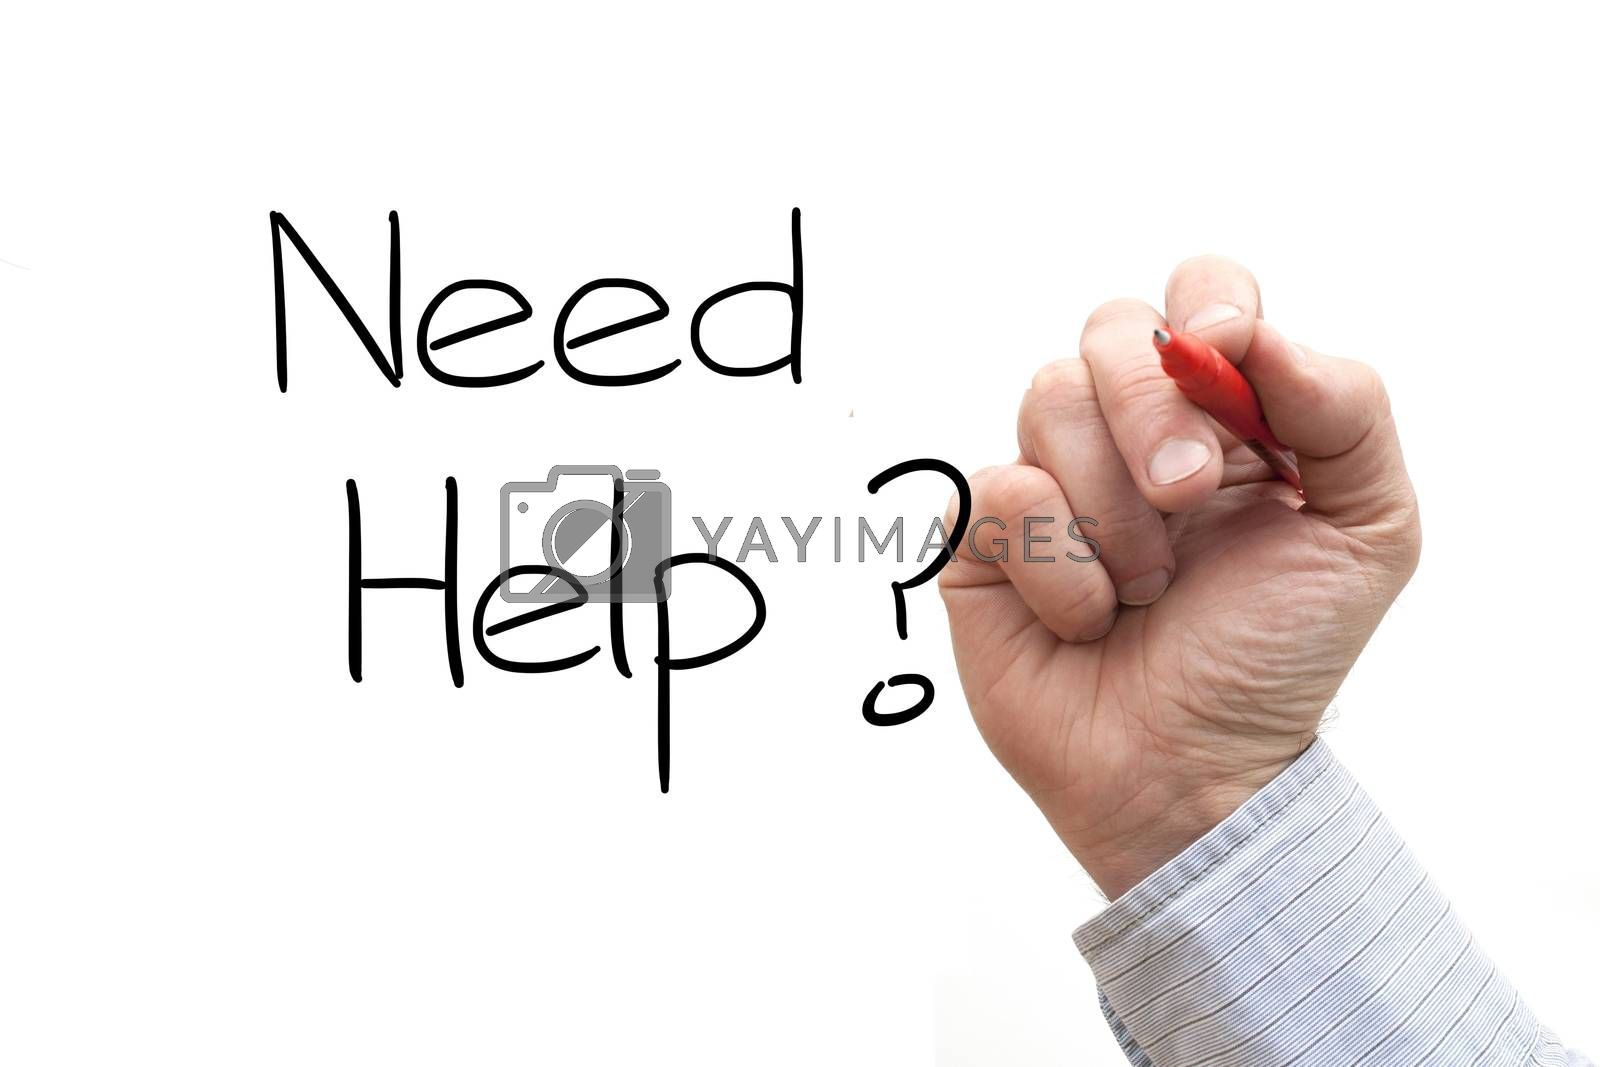 A Photo / Illustration of a Hand Writing 'Need Help?'